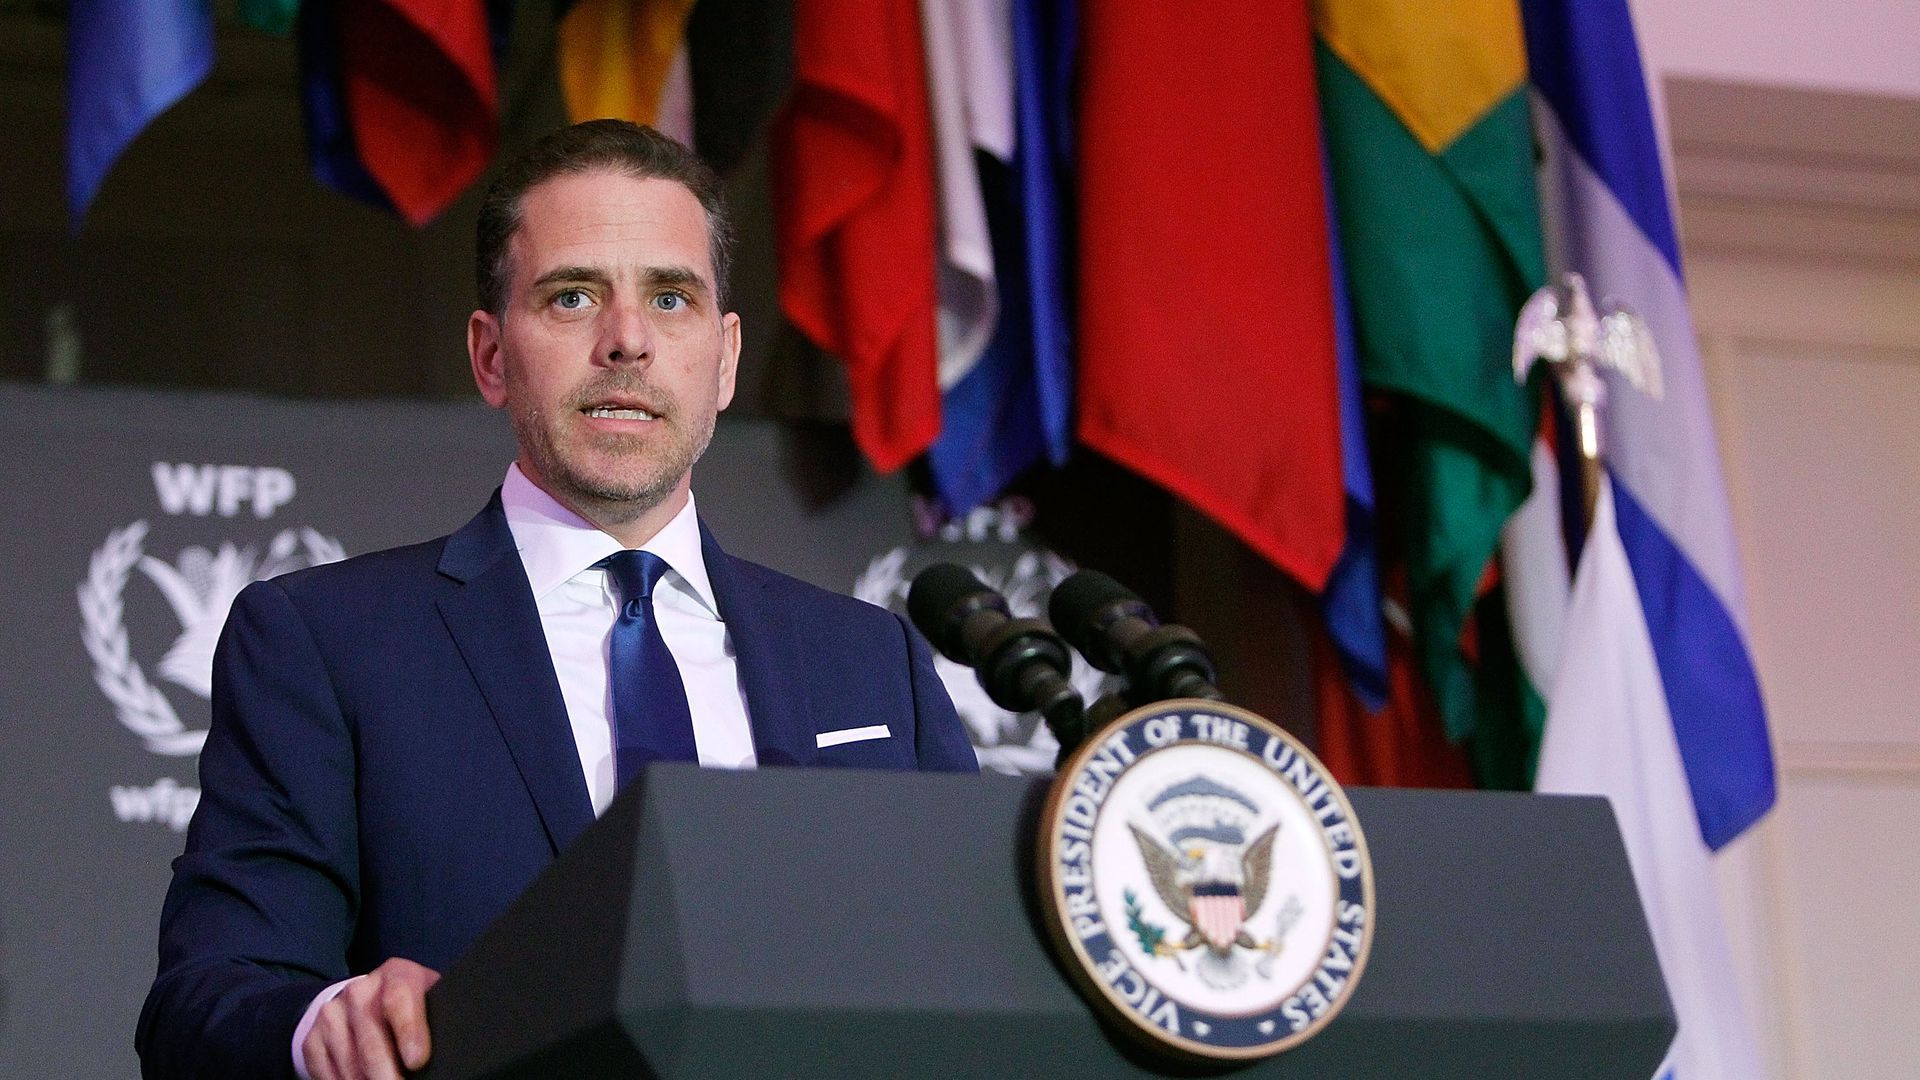 Hunter Biden to step down from board of Chinese firm amid Trump impeachment inquiry